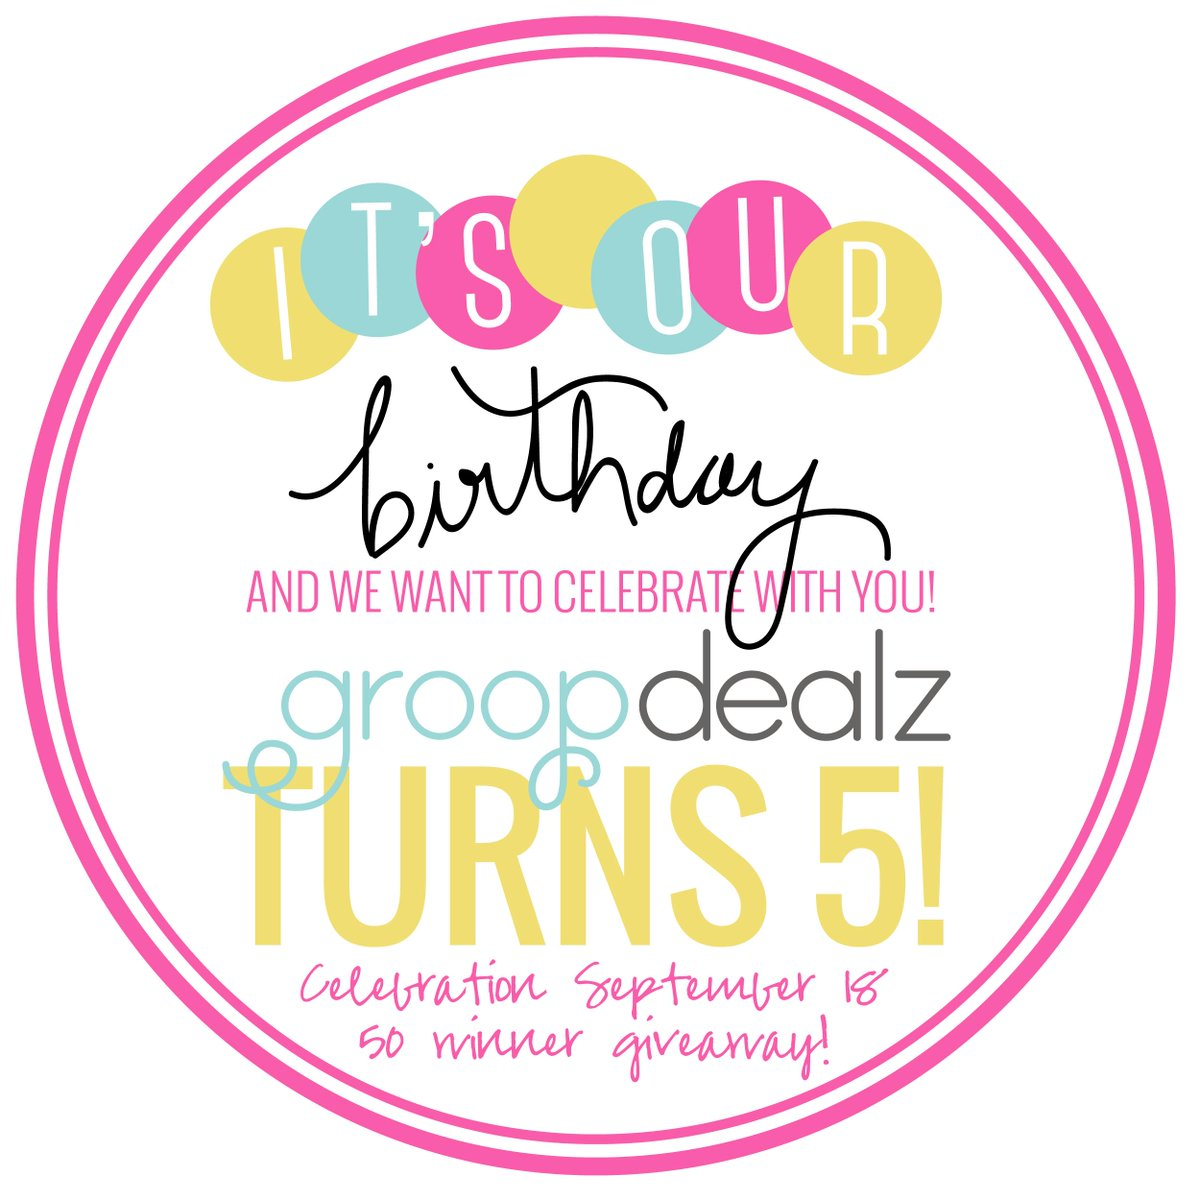 It's Birthday Week at Groopdealz and we want to celebrate with you! 50 Winner #giveaway!   http://t.co/5qmnktomV8 http://t.co/2ON8oW3qIR